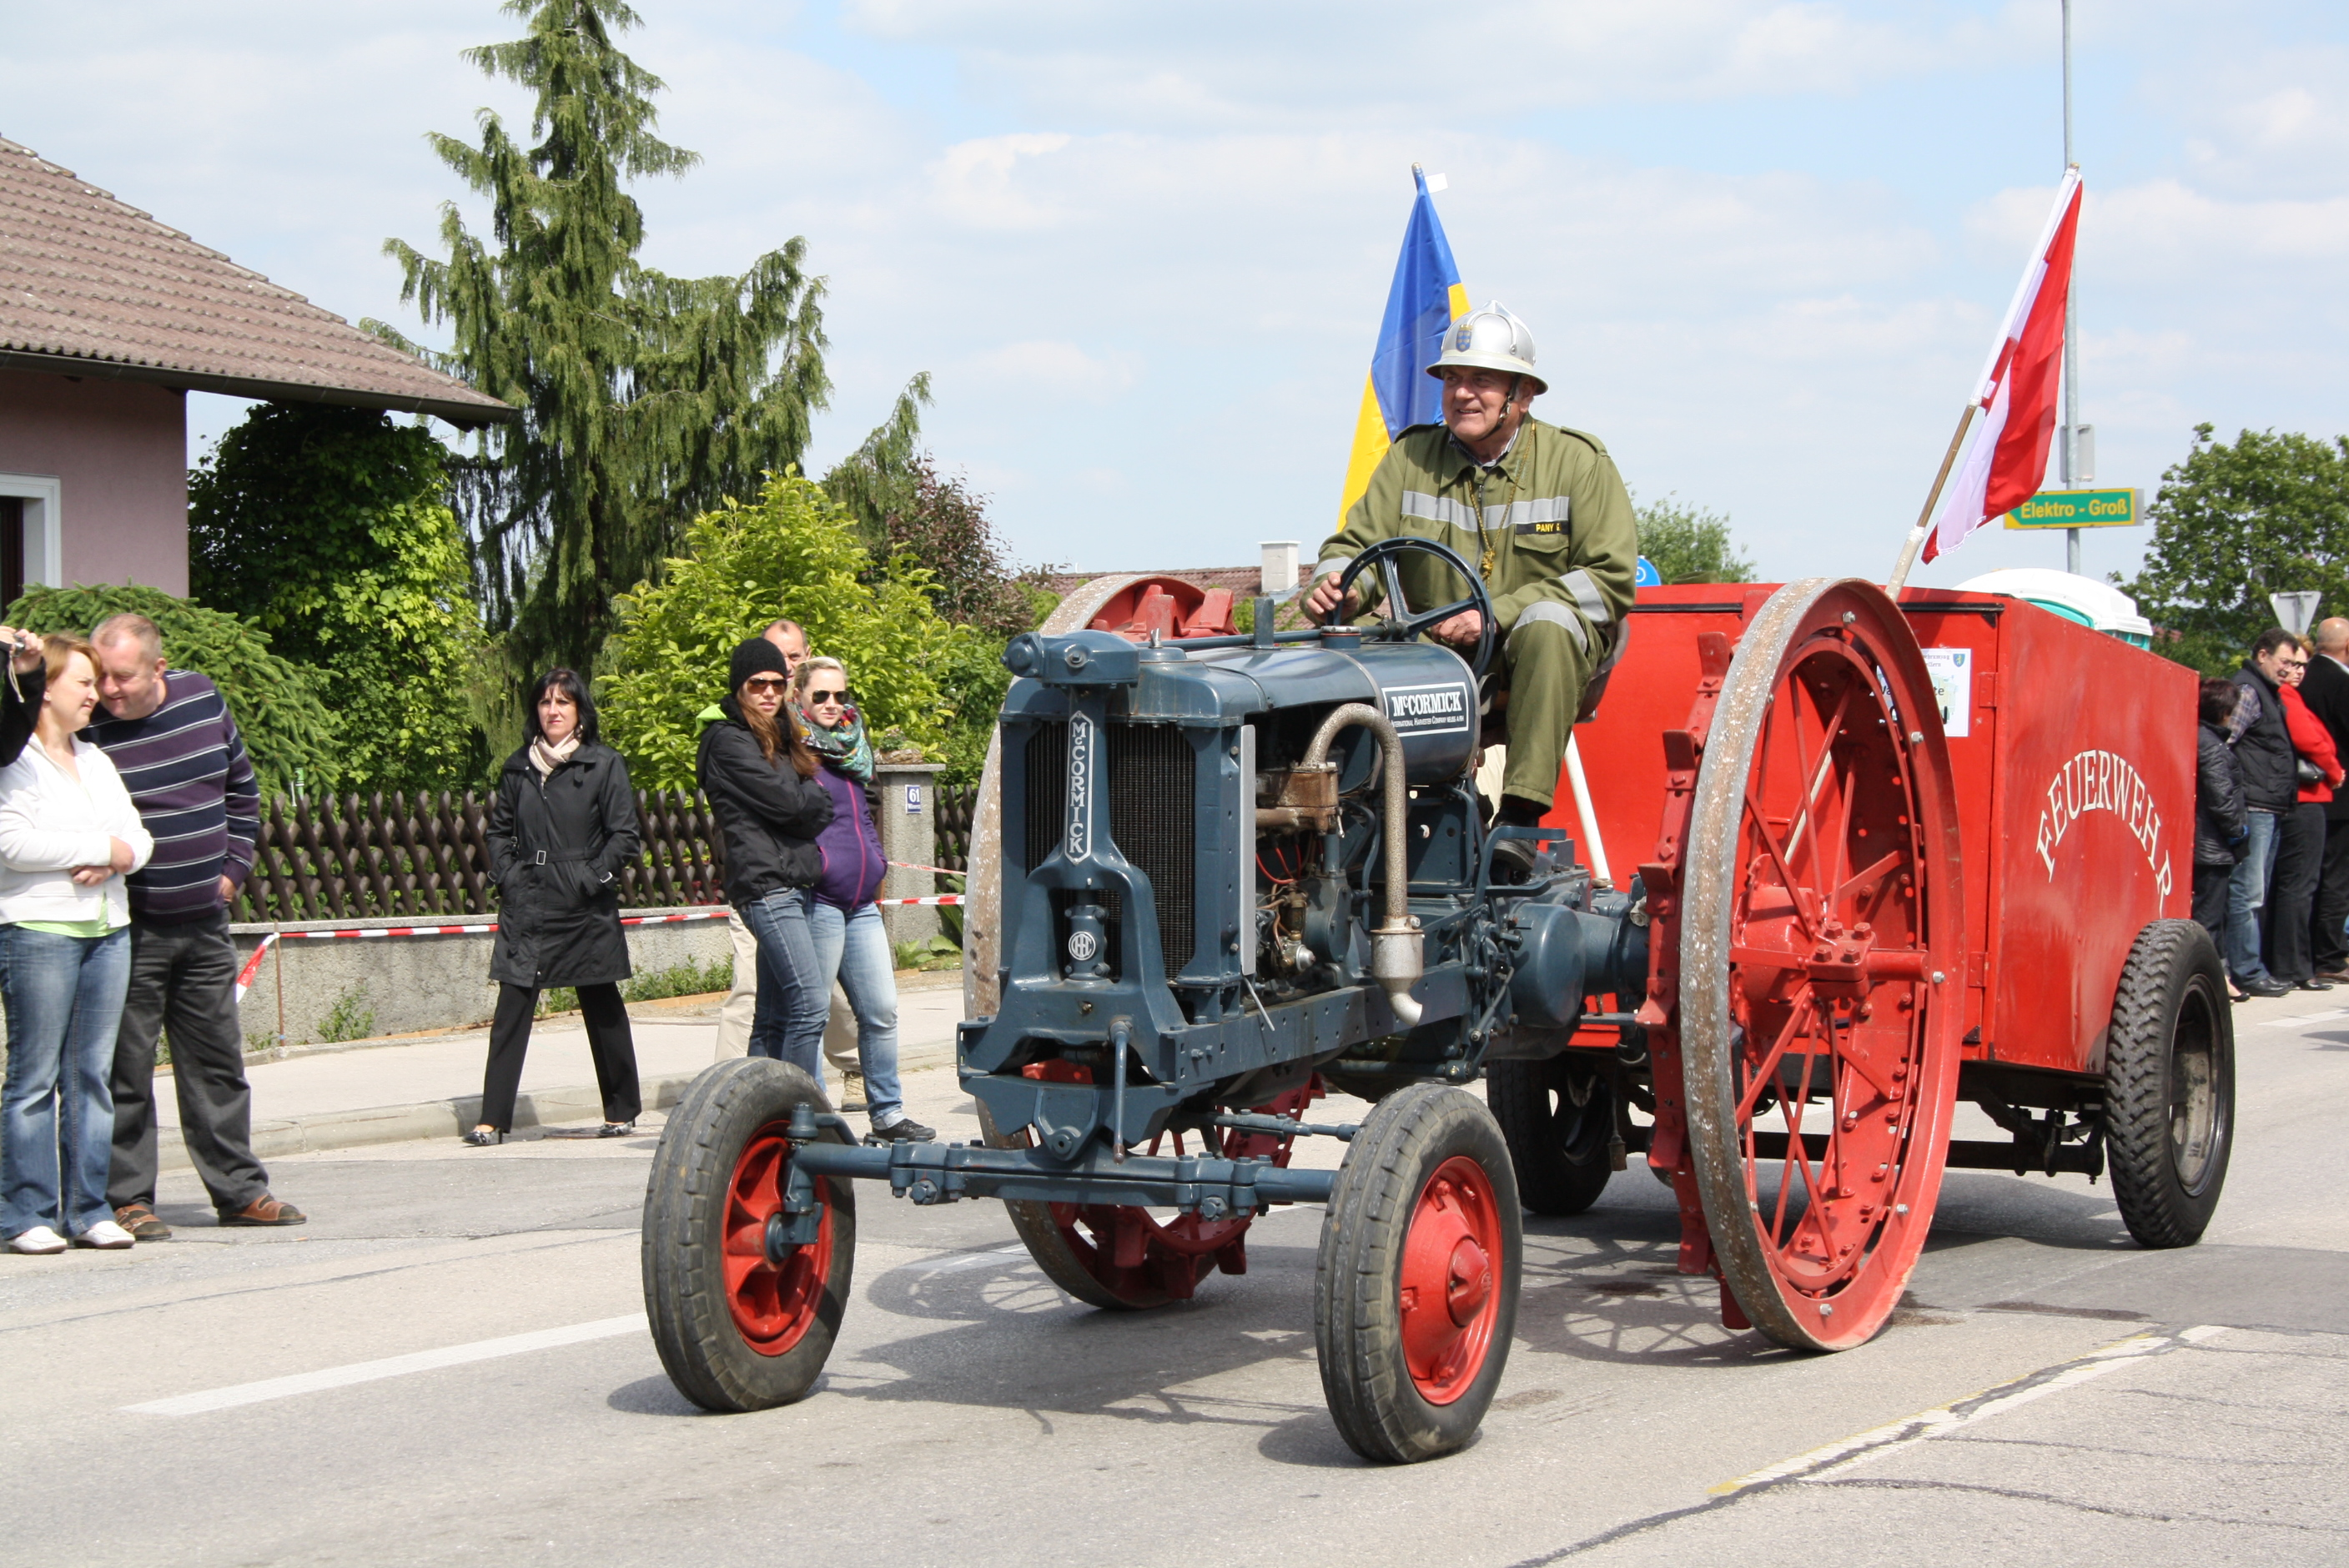 File:McCormick historical tractor jpg - Wikimedia Commons